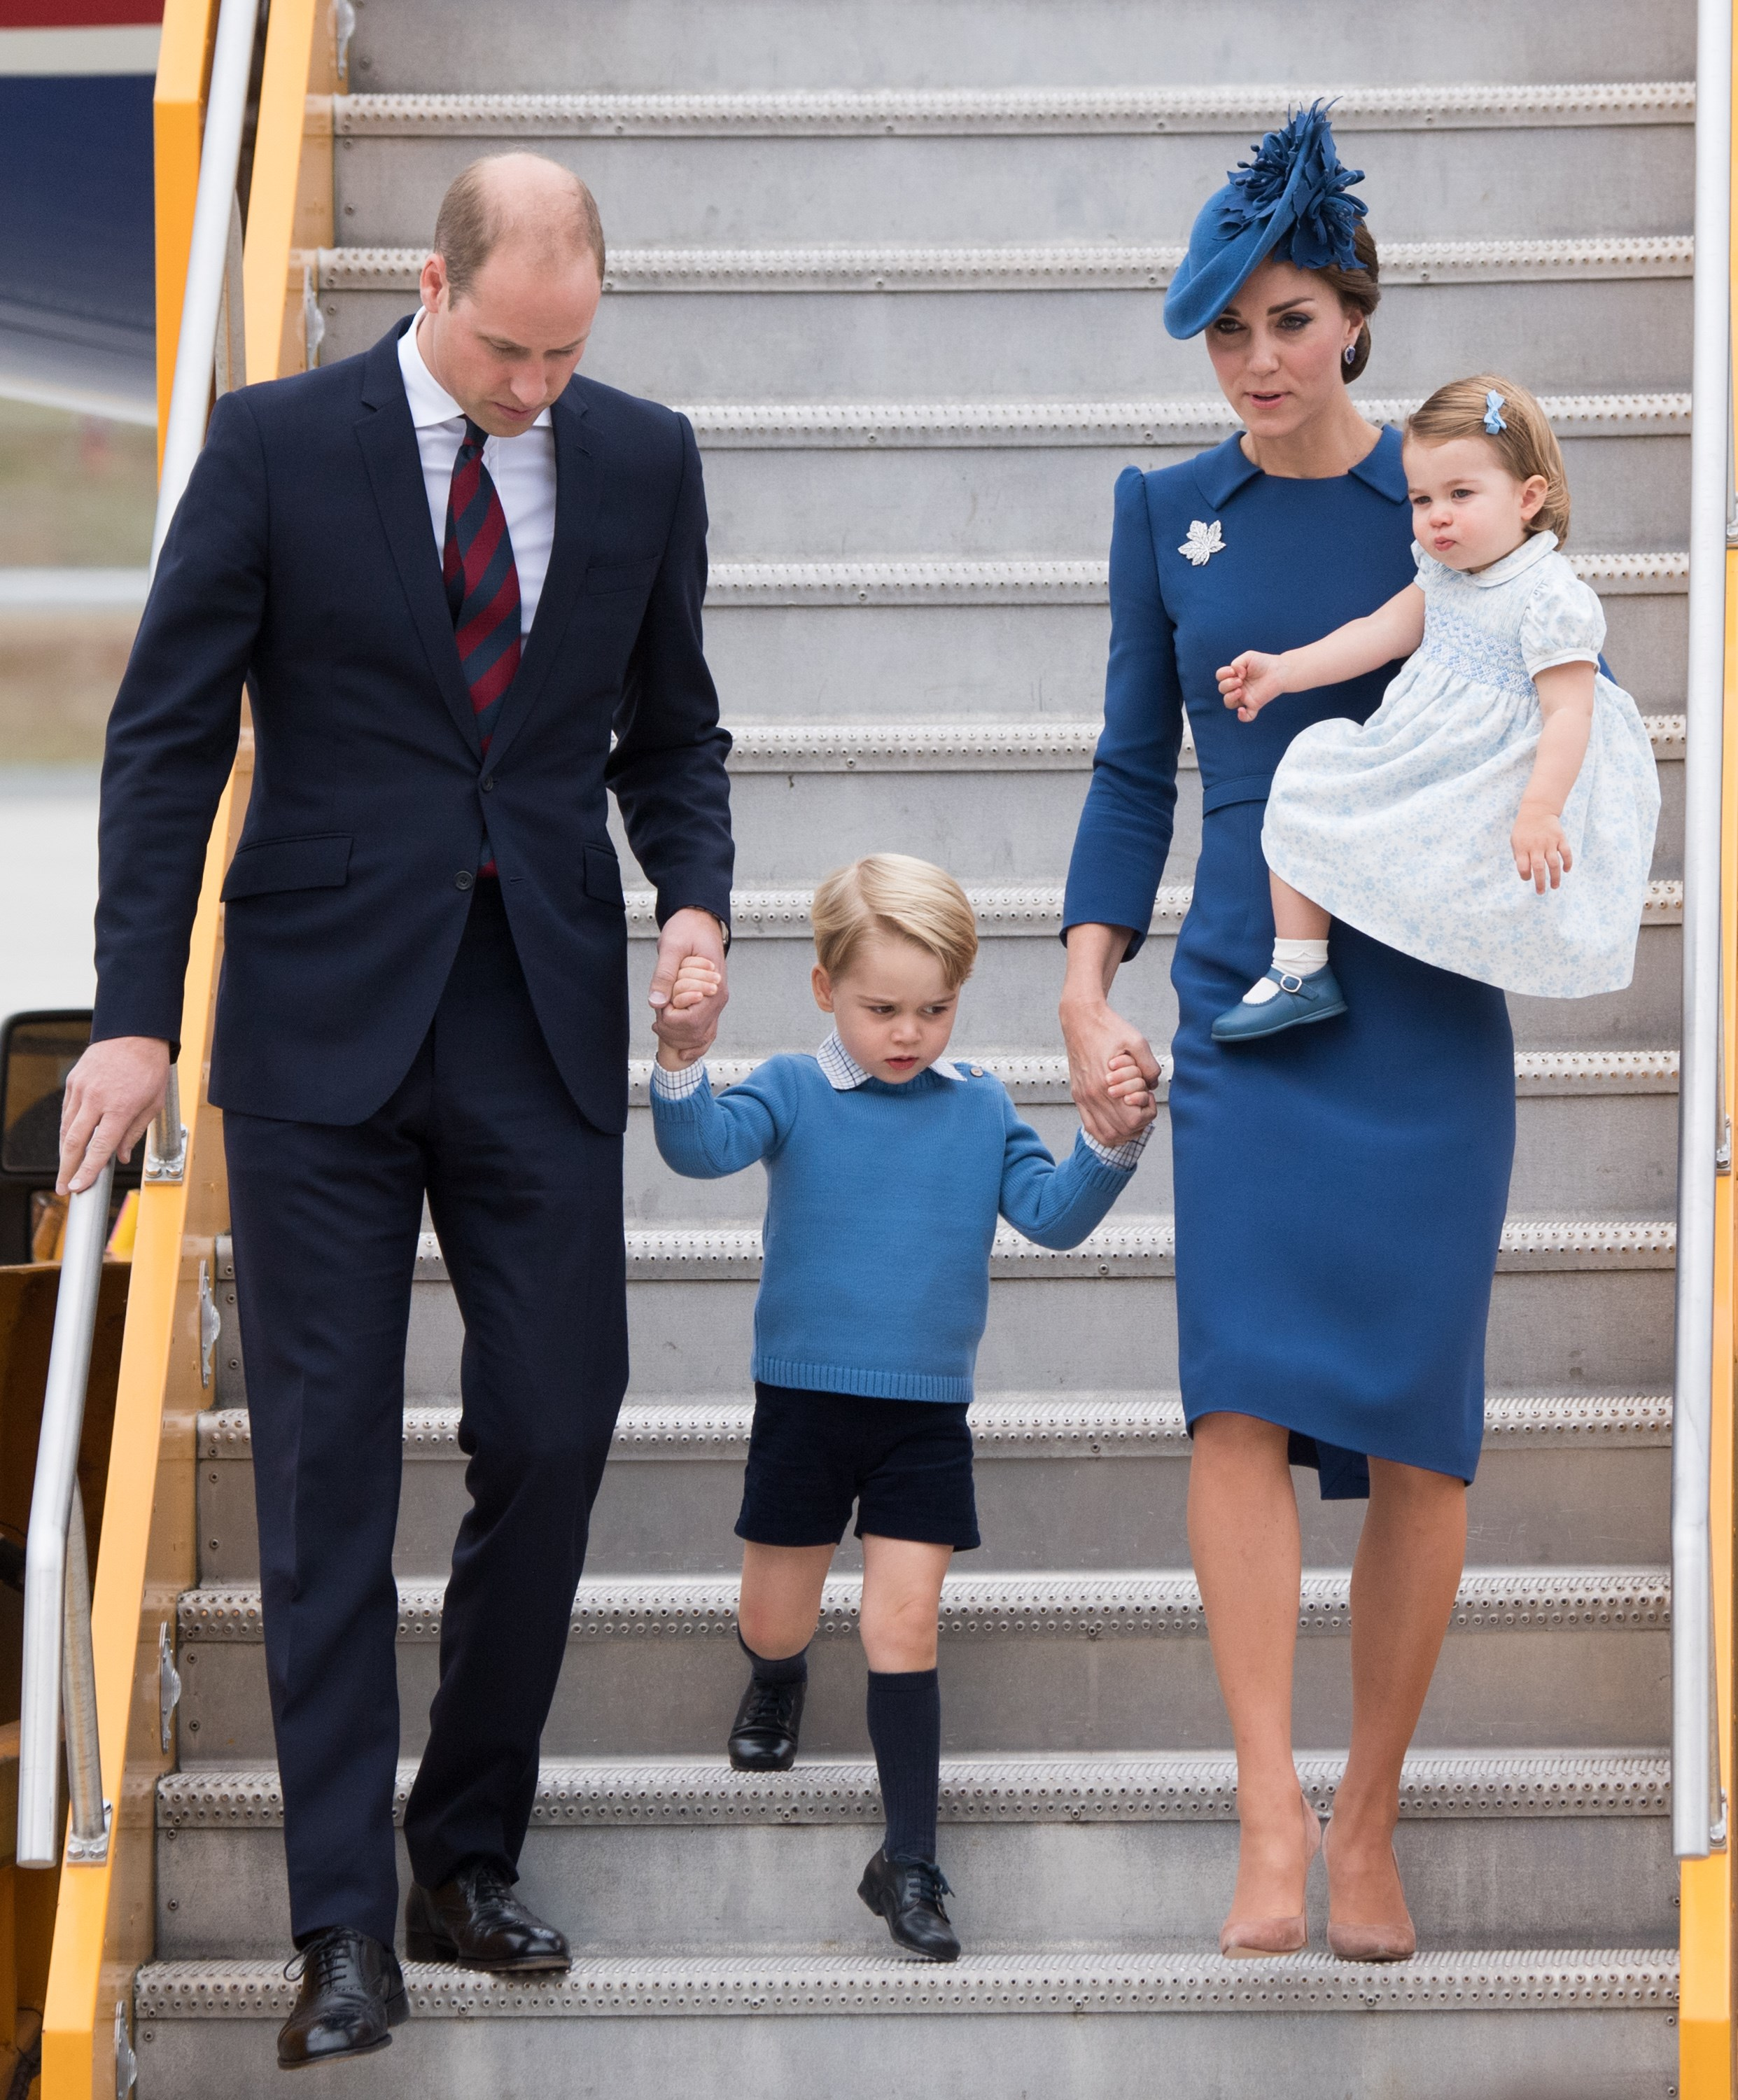 Stepping off the plane in Victoria for the beginning of the royal tour of Canada in September, Catherine chose a fitted blue Jenny Packham dress worn with a matching headpiece and a maple leaf brooch. To break the look up, she wore her favourite nude heels and carried a matching clutch bag – when she wasn't busy holding on to Prince George and Princess Charlotte, that is.